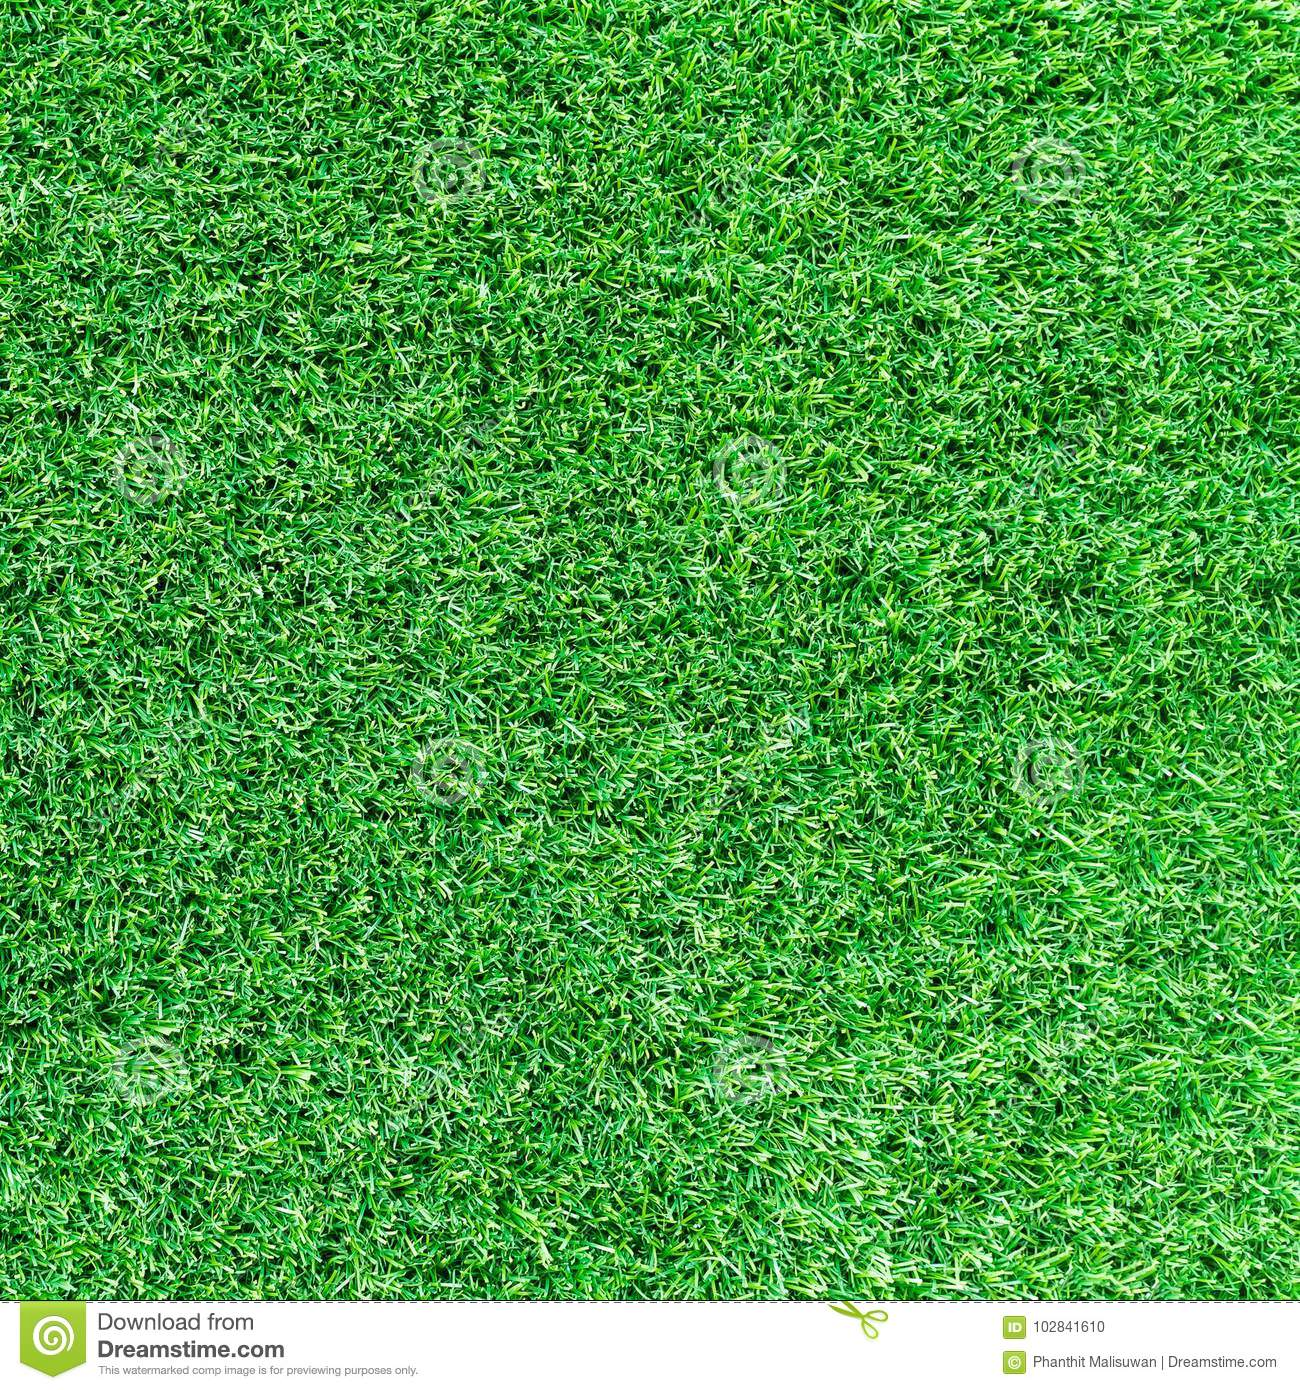 Artificial green grass texture or green grass background for golf course. soccer field or sports background